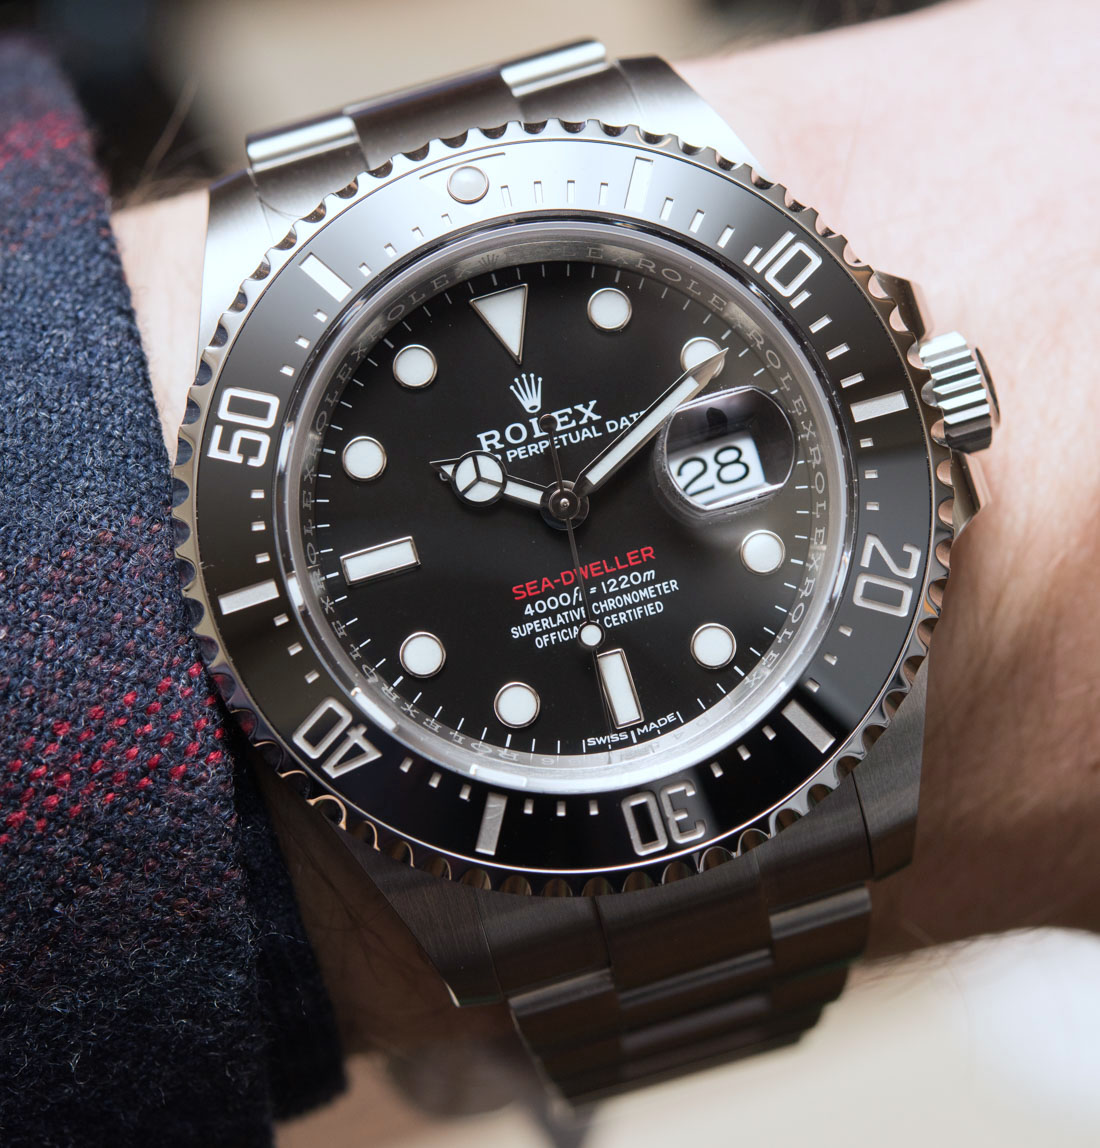 Rolex Sea-Dweller 126600 Watch Marks Anniversary Of The Sea-Dweller Replica Clearance